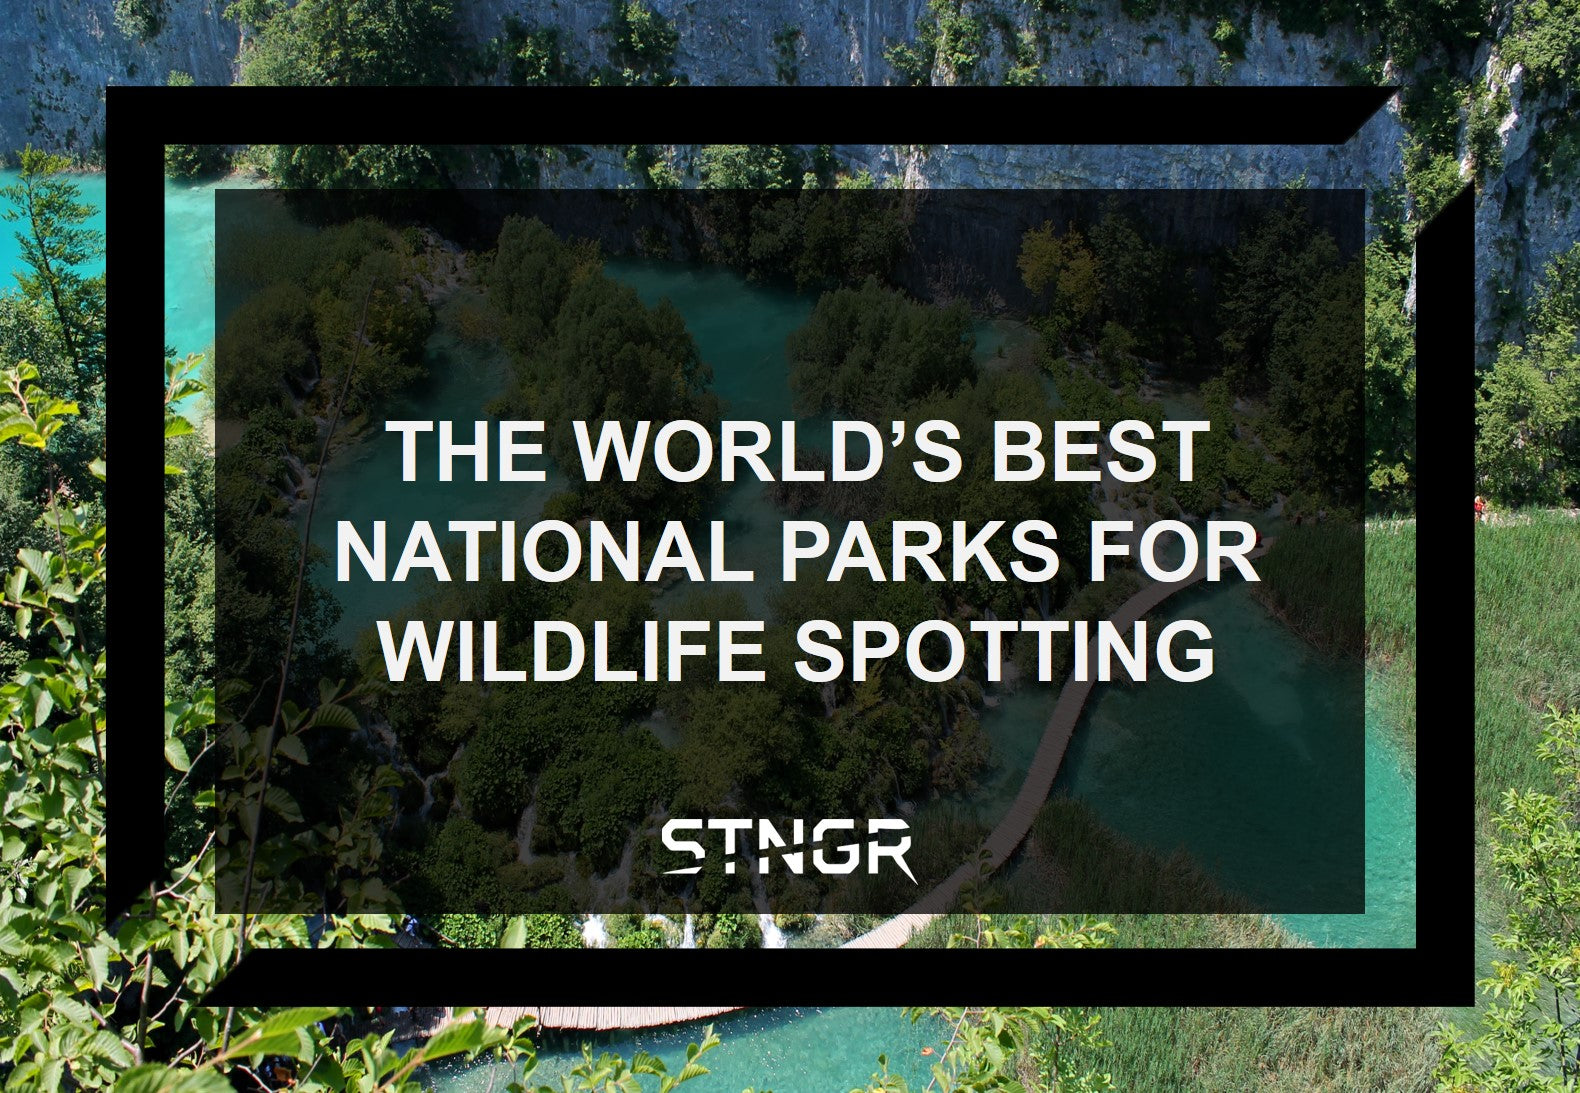 The World's Best National Parks for Wildlife Spotting